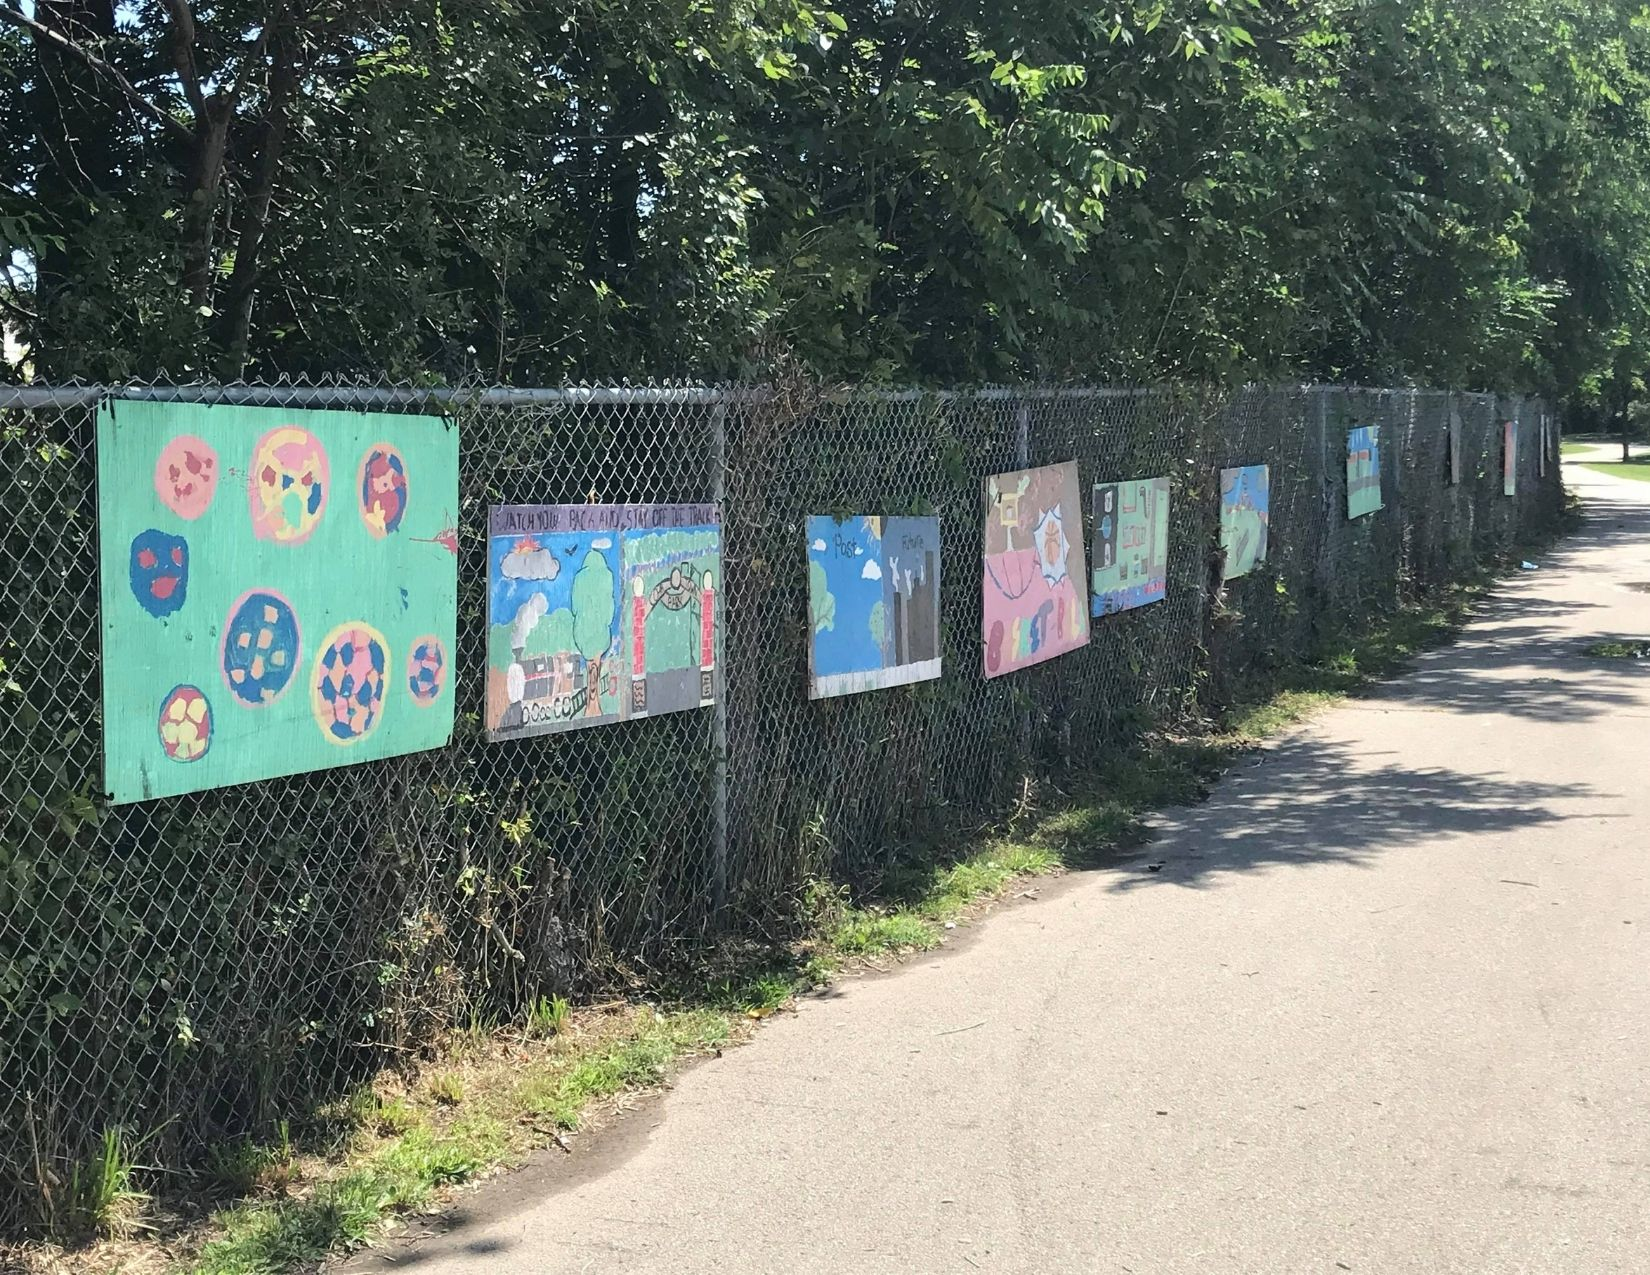 Children's art hanging on a fence beside a multi-use path